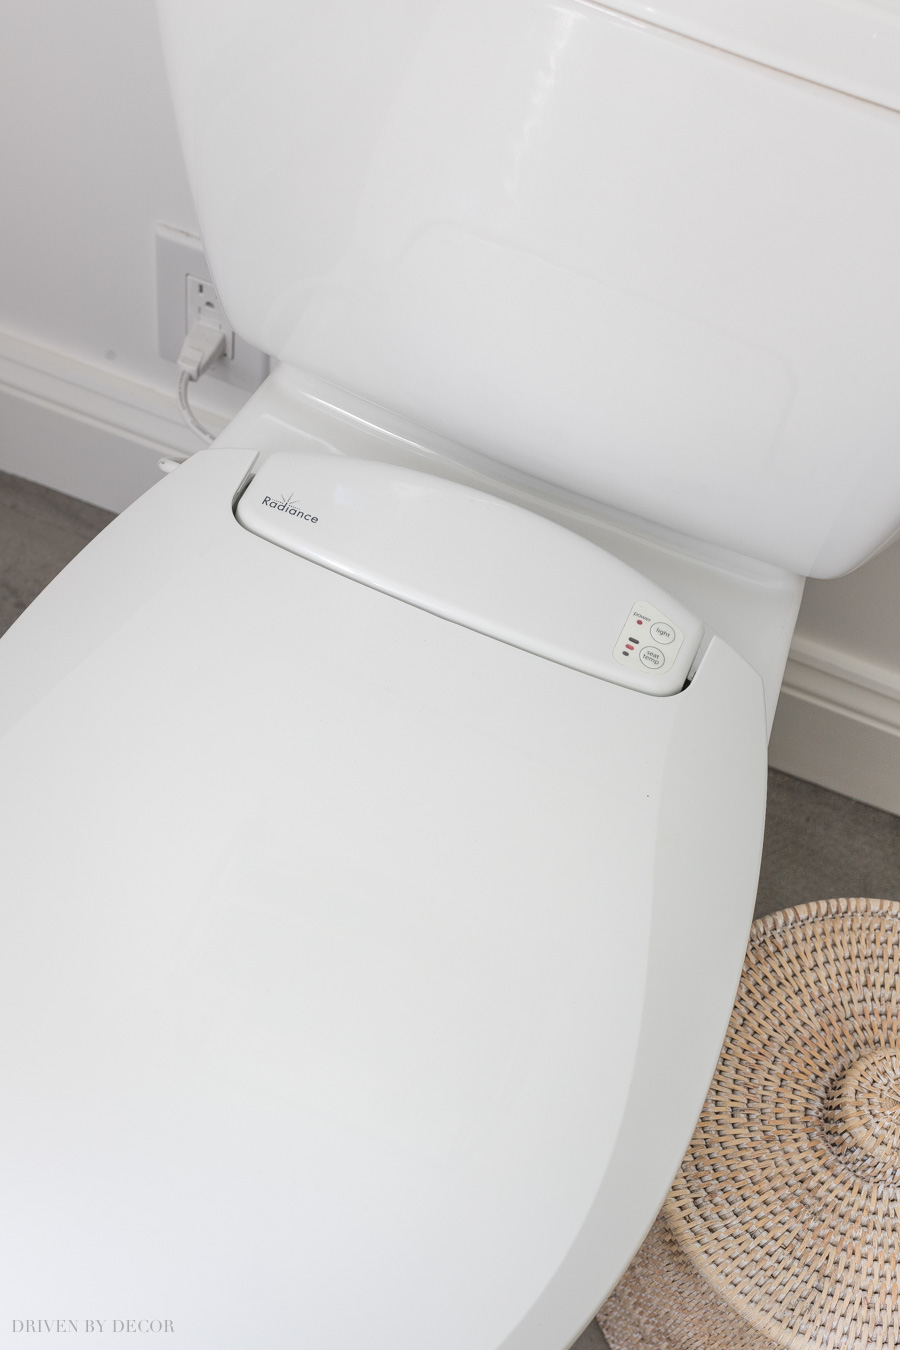 A heated toilet seat - love this idea!